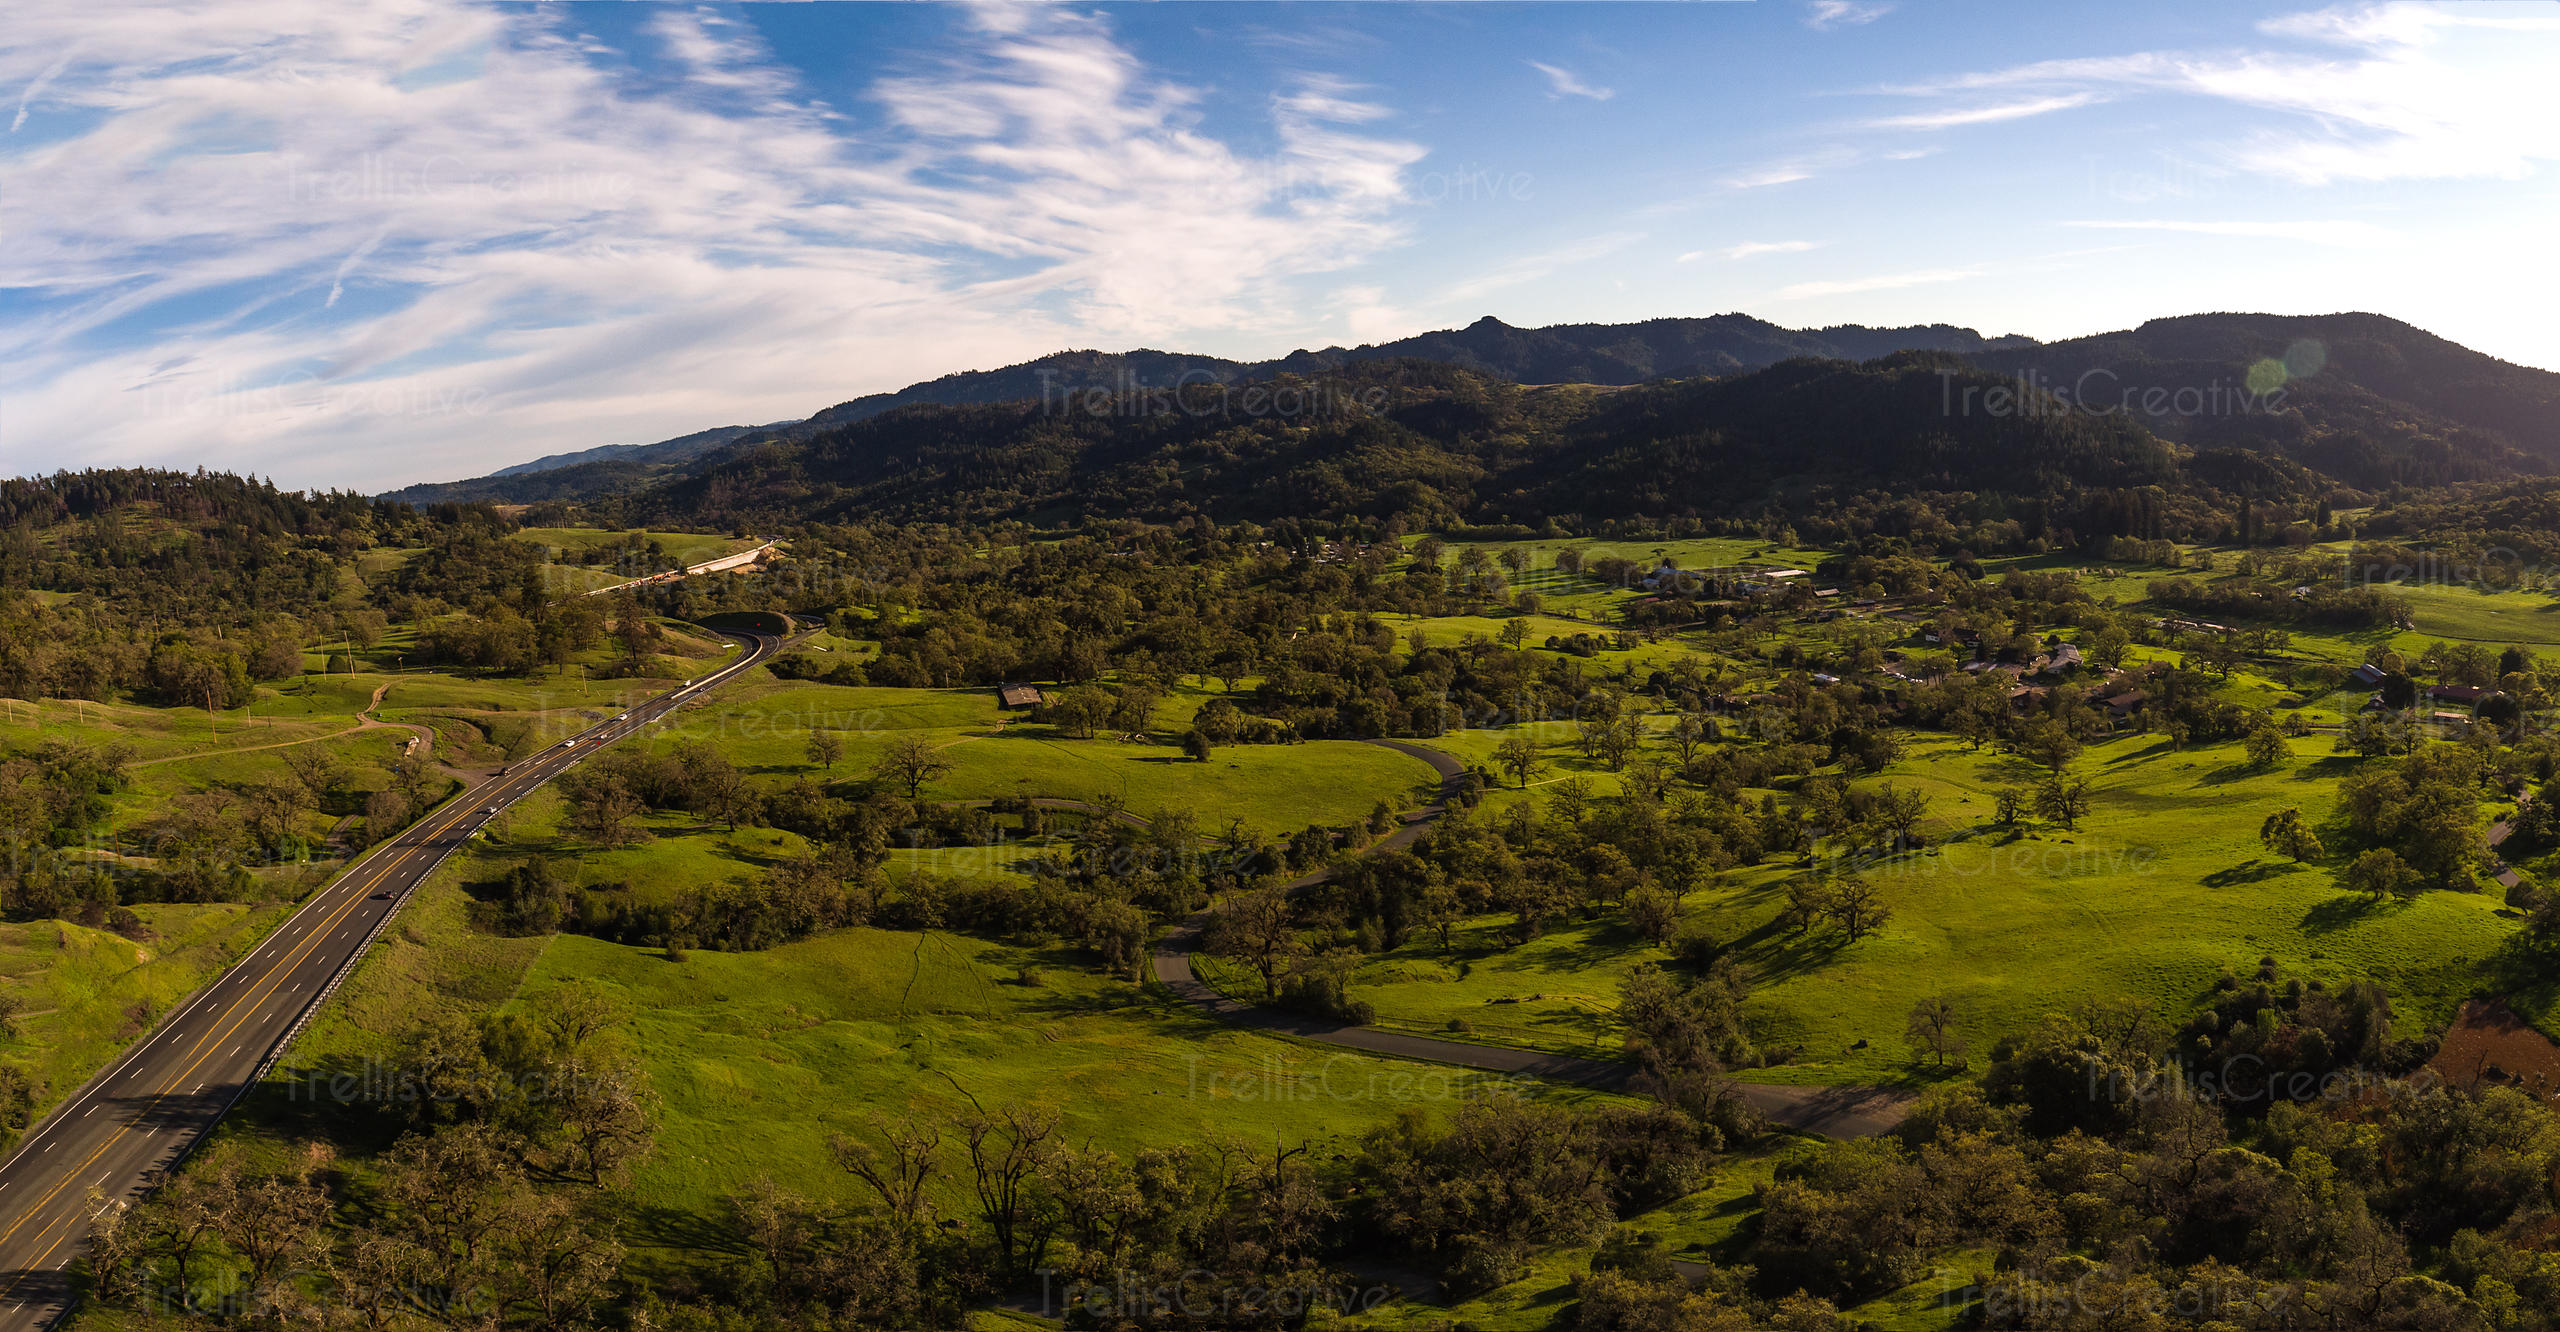 Aerial view of the Ridgewood Ranch valley near Willits, California.